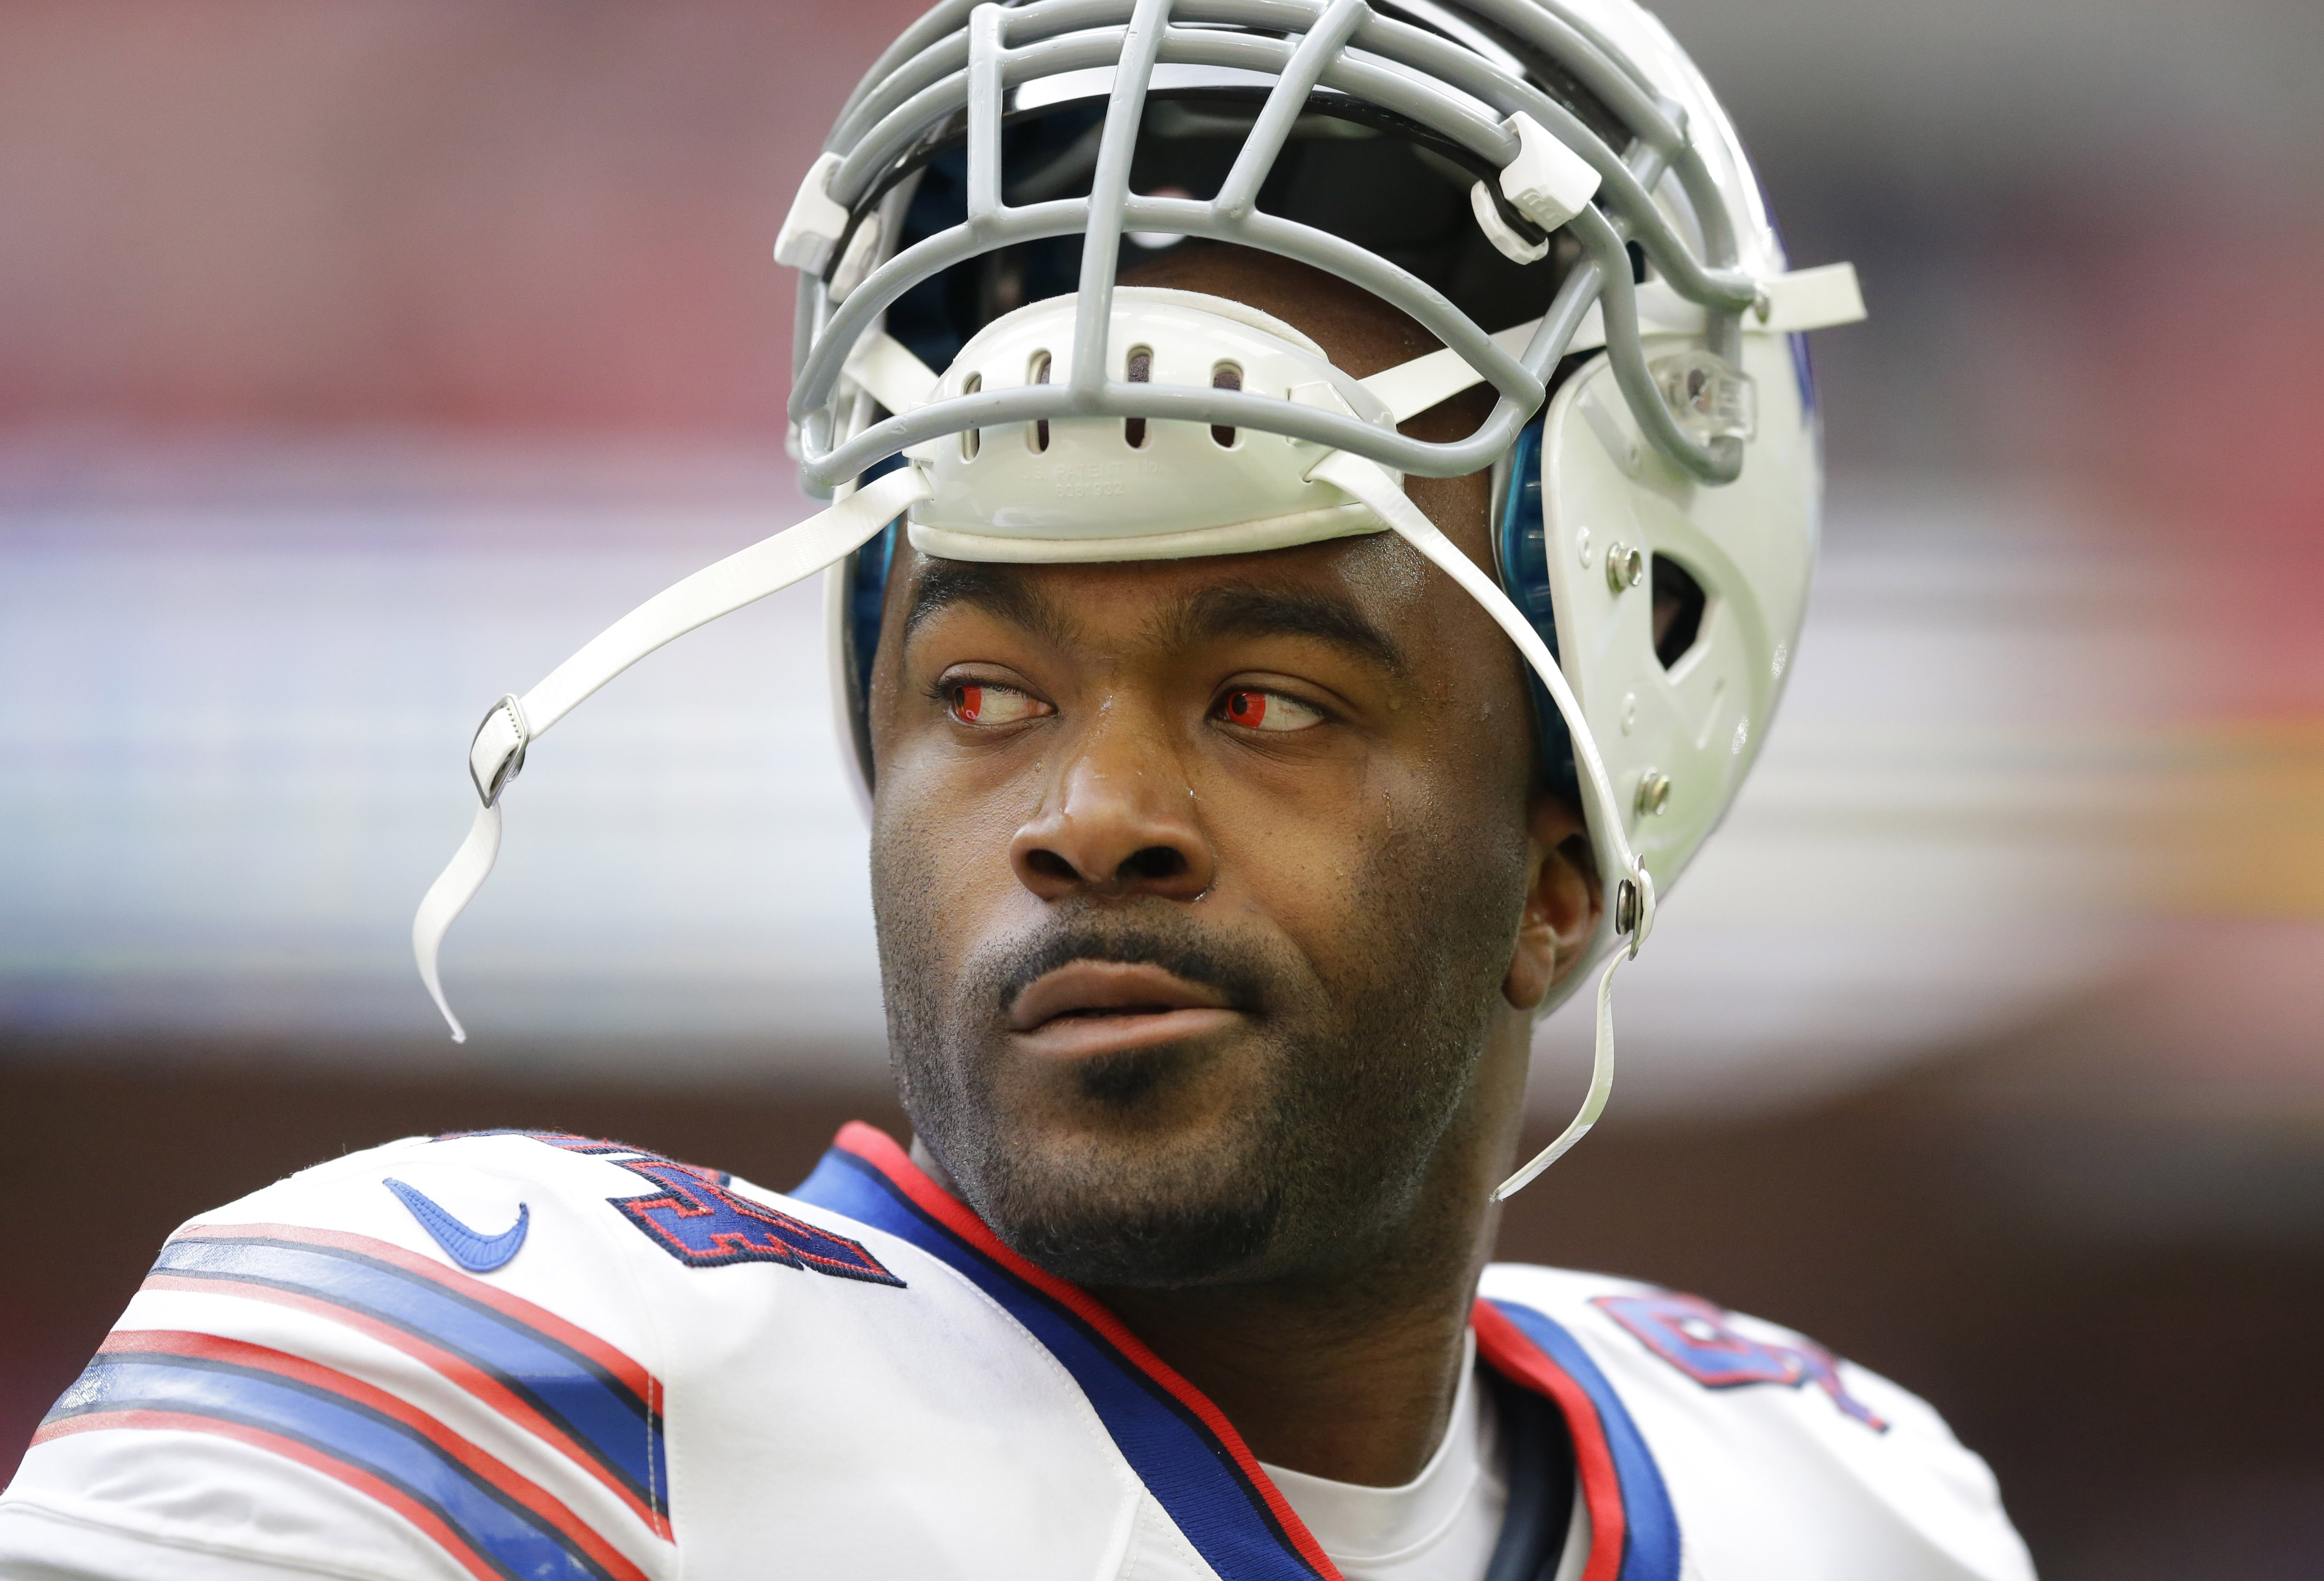 FILE - In this Oct. 25, 2015, file photo, Buffalo Bills defensive end Mario Williams stands on the field during the warm-up before an NFL game against the Jacksonville Jaguars at Wembley Stadium in Londo. The Bills released the high-priced defensive end o